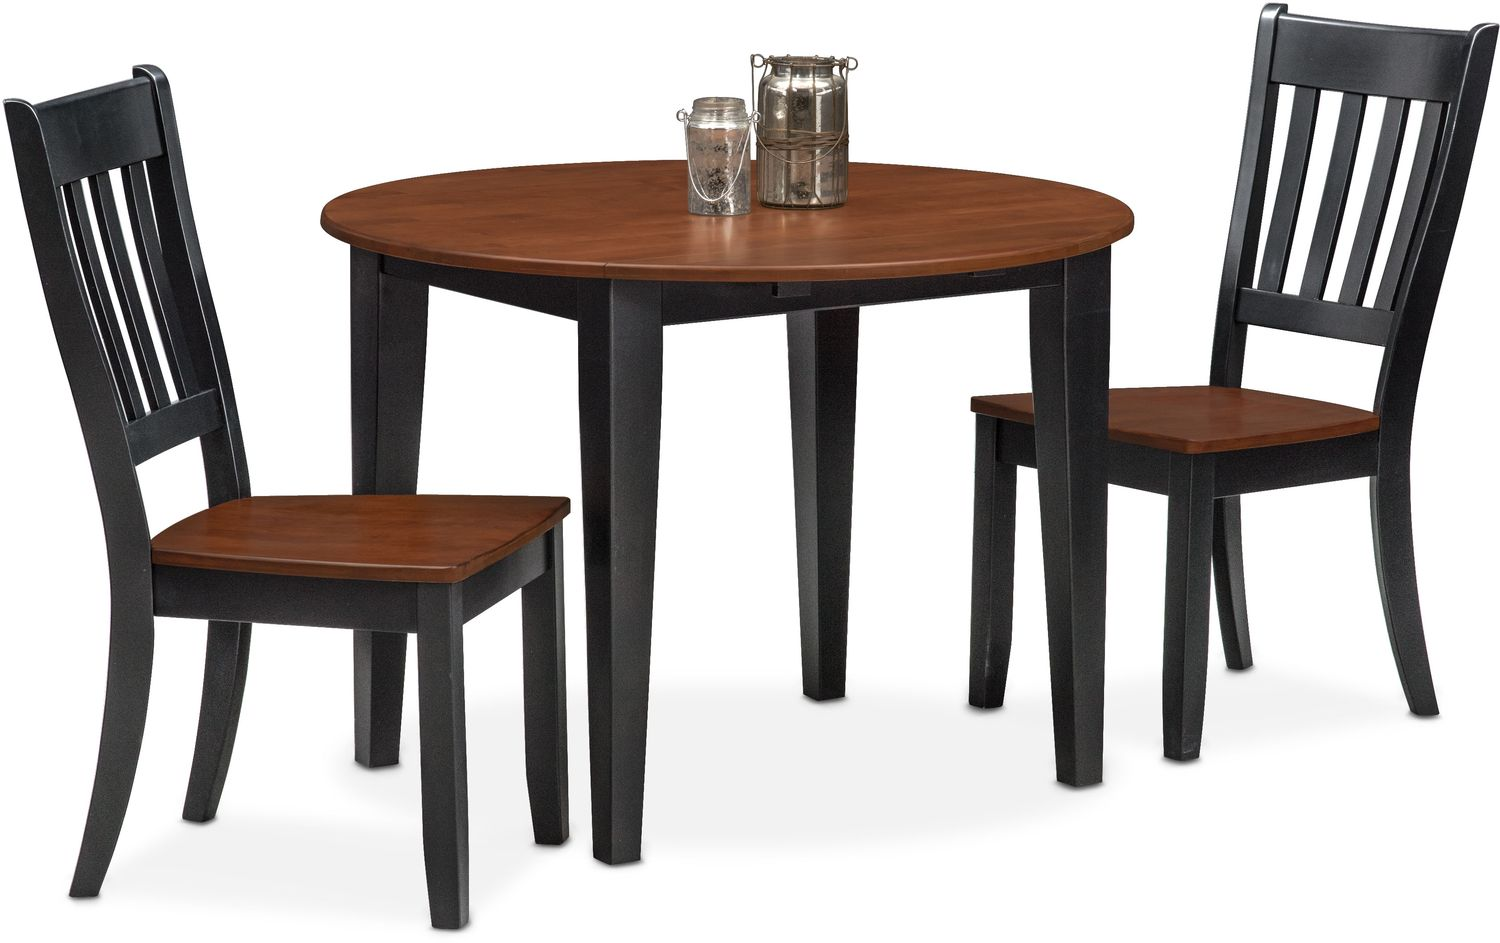 Black Dining Room SetsNice Sets For